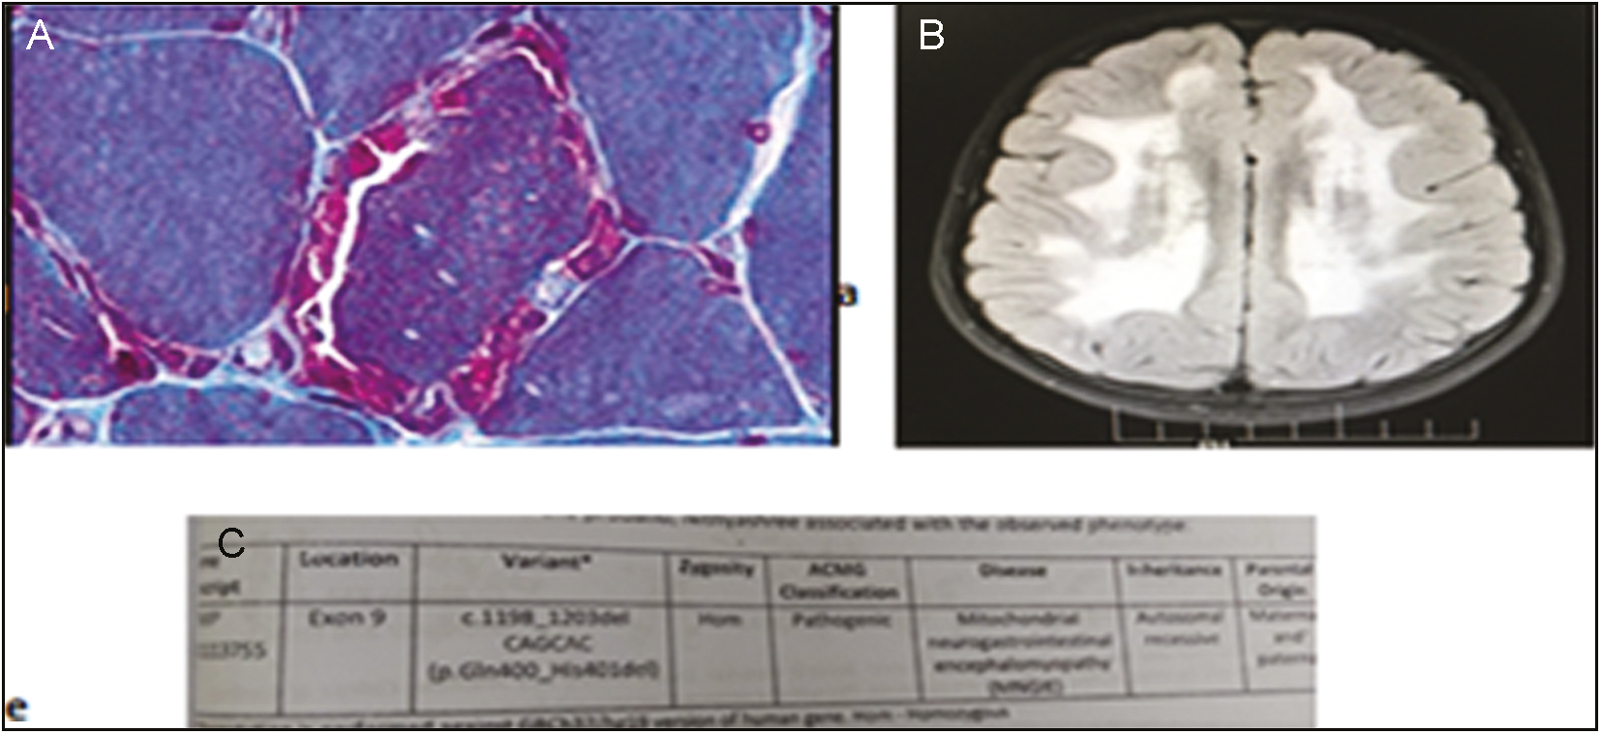 Figure 12: Mitochondrial neurogastrointestinal encephalopathy (MNGIE) (A) histopathology of muscle with modified Gömöri trichrome stain showing ragged red fibers. (B) MRI showing symmetrical white matter changes. (C) Genetic report confirming the diagnosis